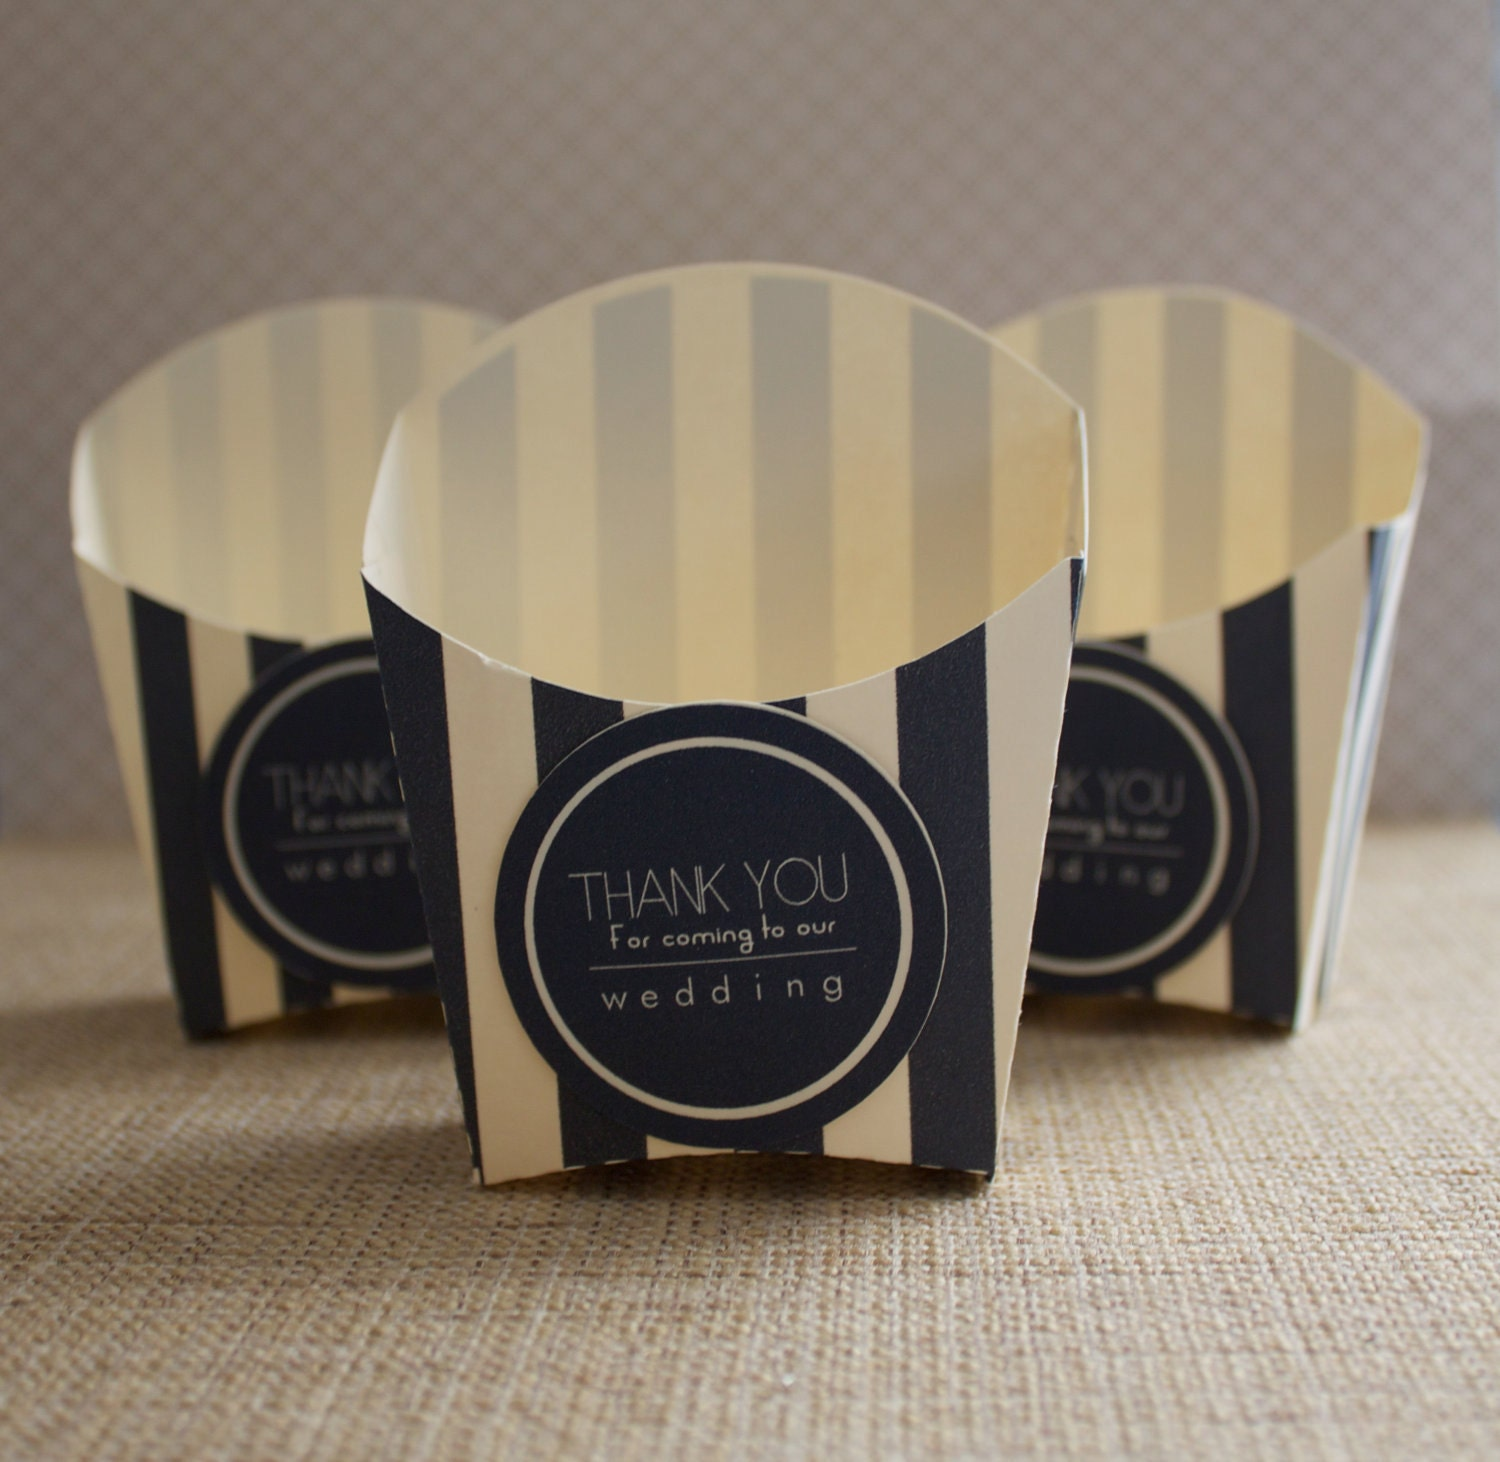 Black and Ivory Striped Fry Wedding Favor Boxes Treat Containers / Party Favors (50 containers)